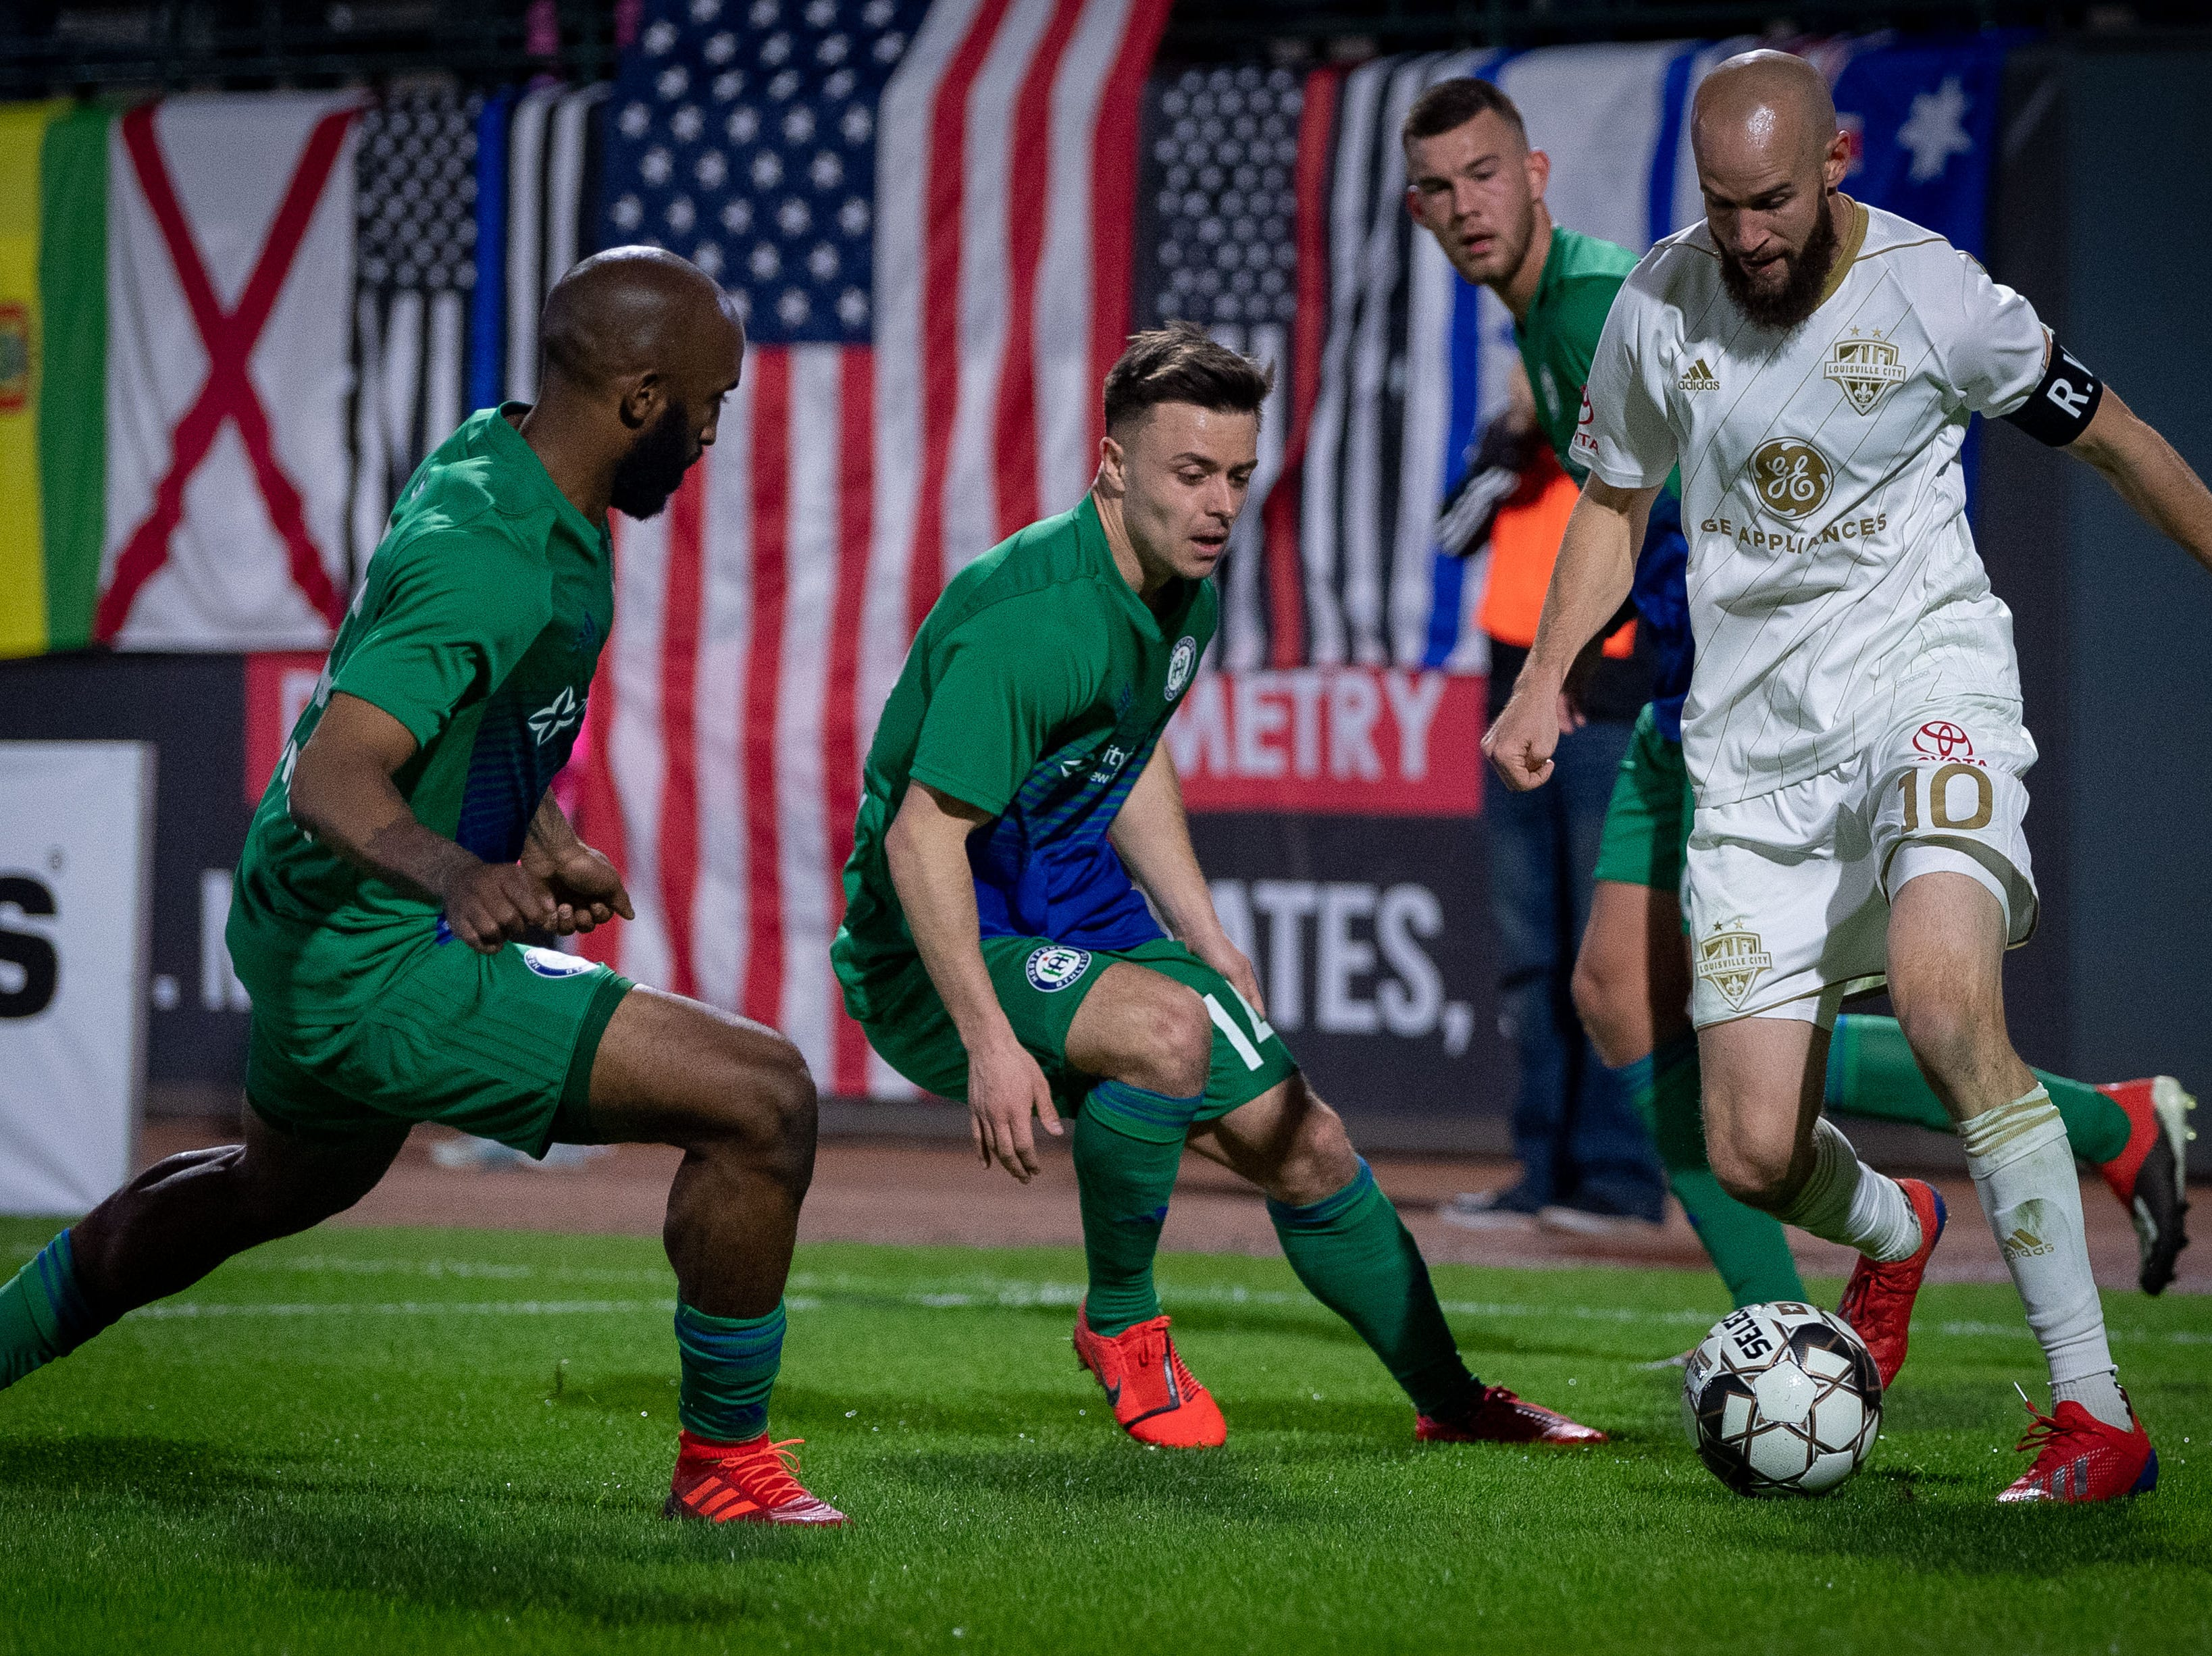 Louisville City FC midfielder Brian Ownby (10) plays against three Hartford Athletic defenders during the season opening match in Louisville, Ky., Saturday, March 23, 2019.